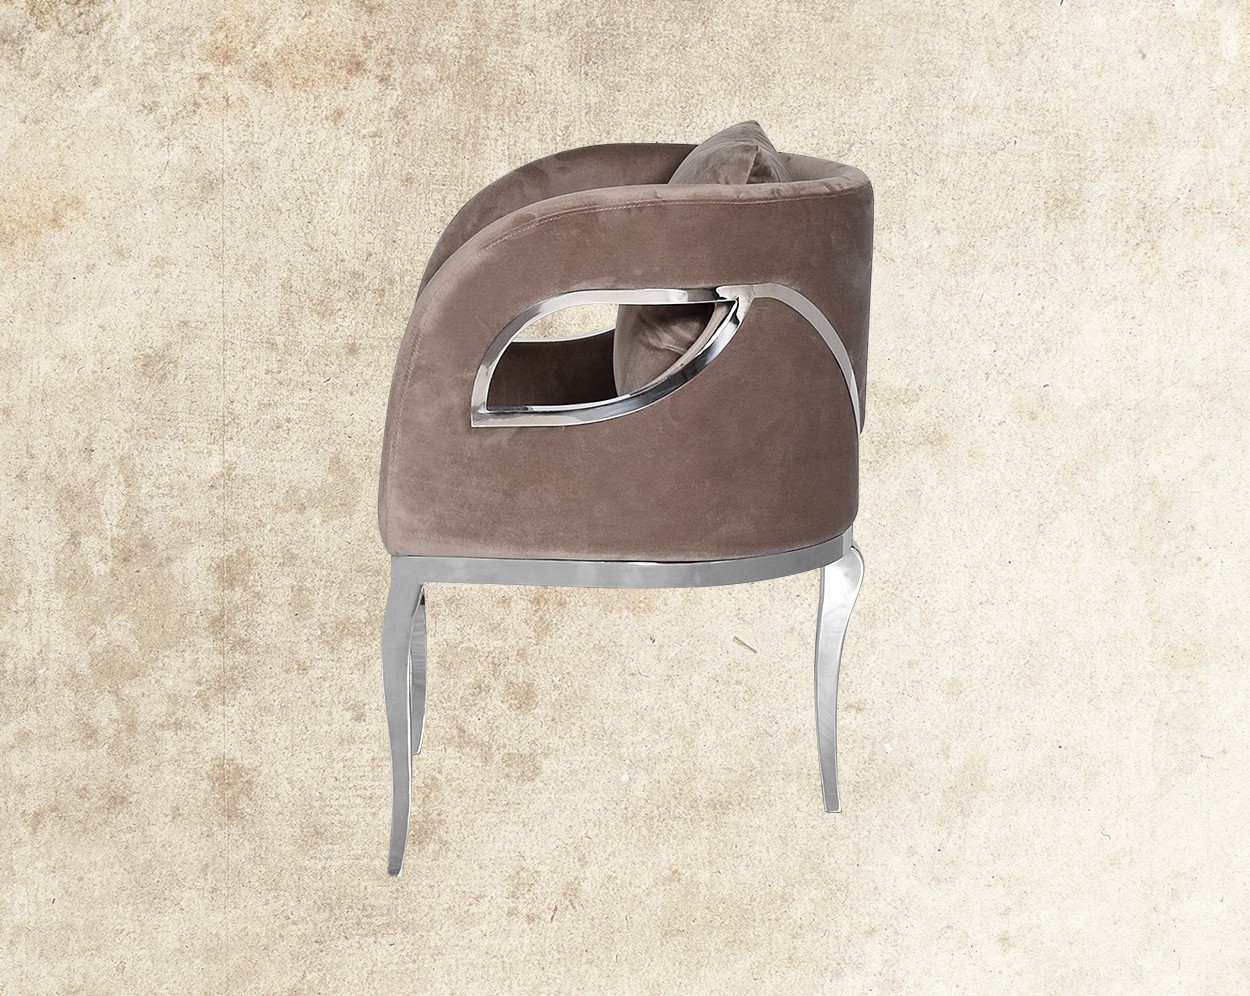 Cariann Fabric Stainless Steel Leisure Chair Side View